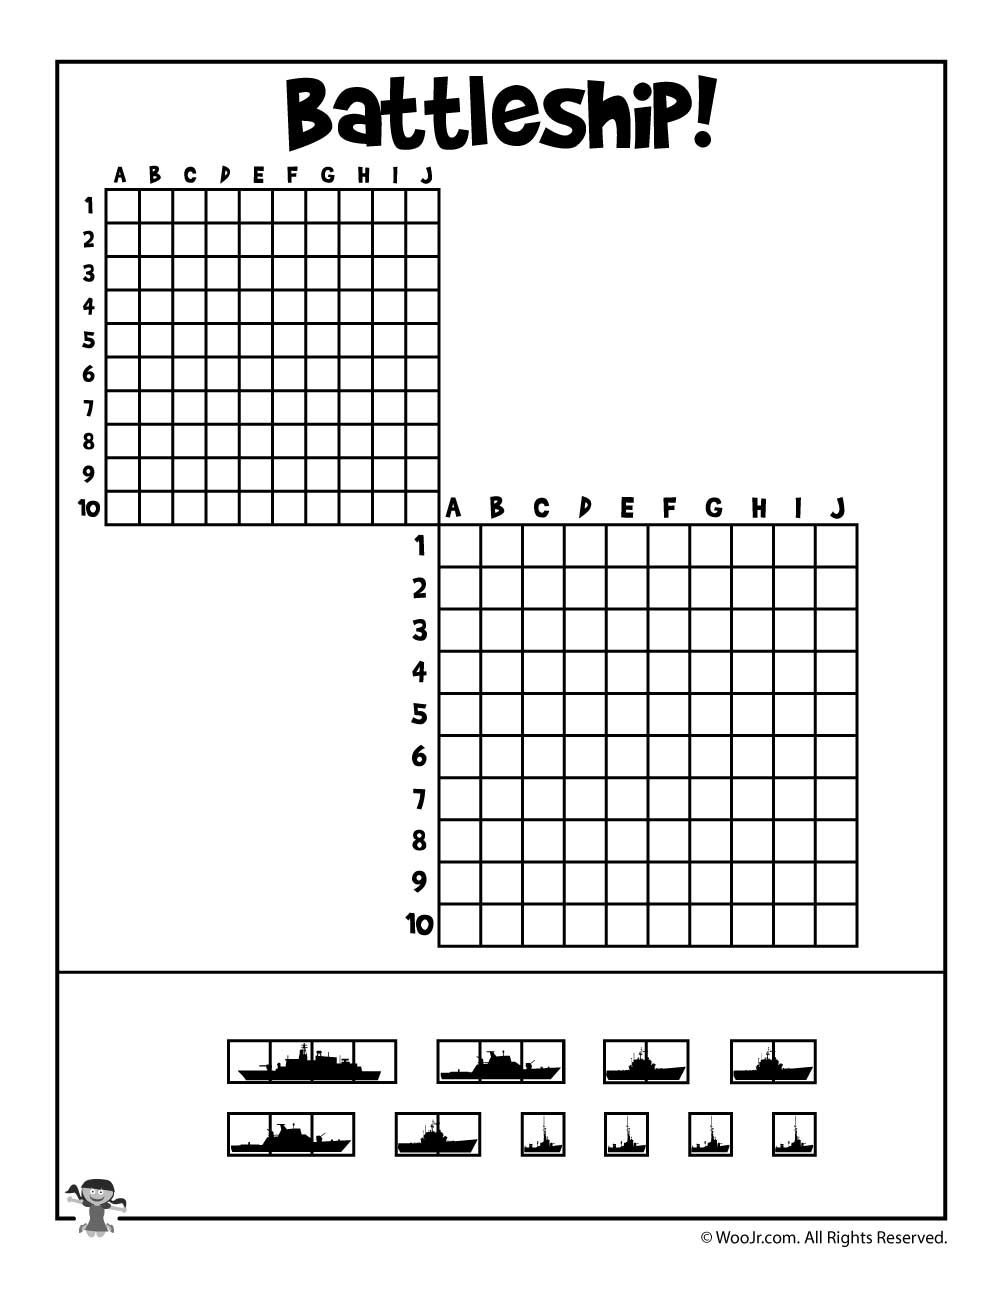 Printable Battleship Game | Childhood Games | Battleship Game, Kid - Free Printable Battleship Game